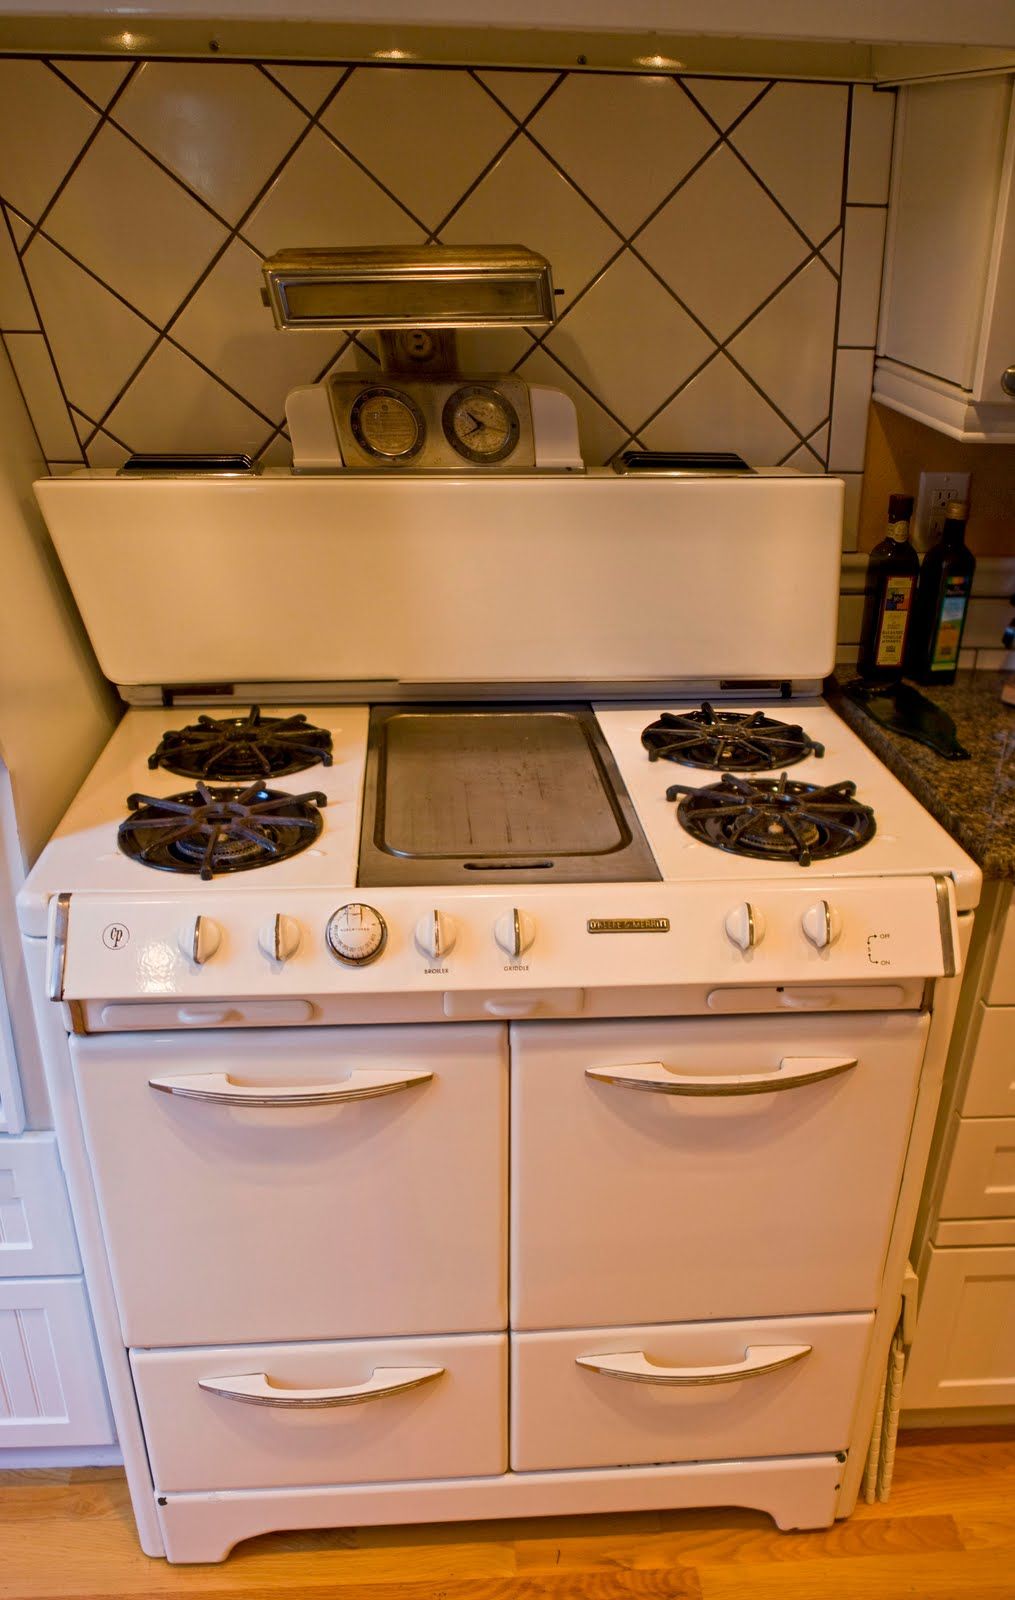 Denver Appliance Stores Looking For Antique Appliance Repair Craig Schedule Service